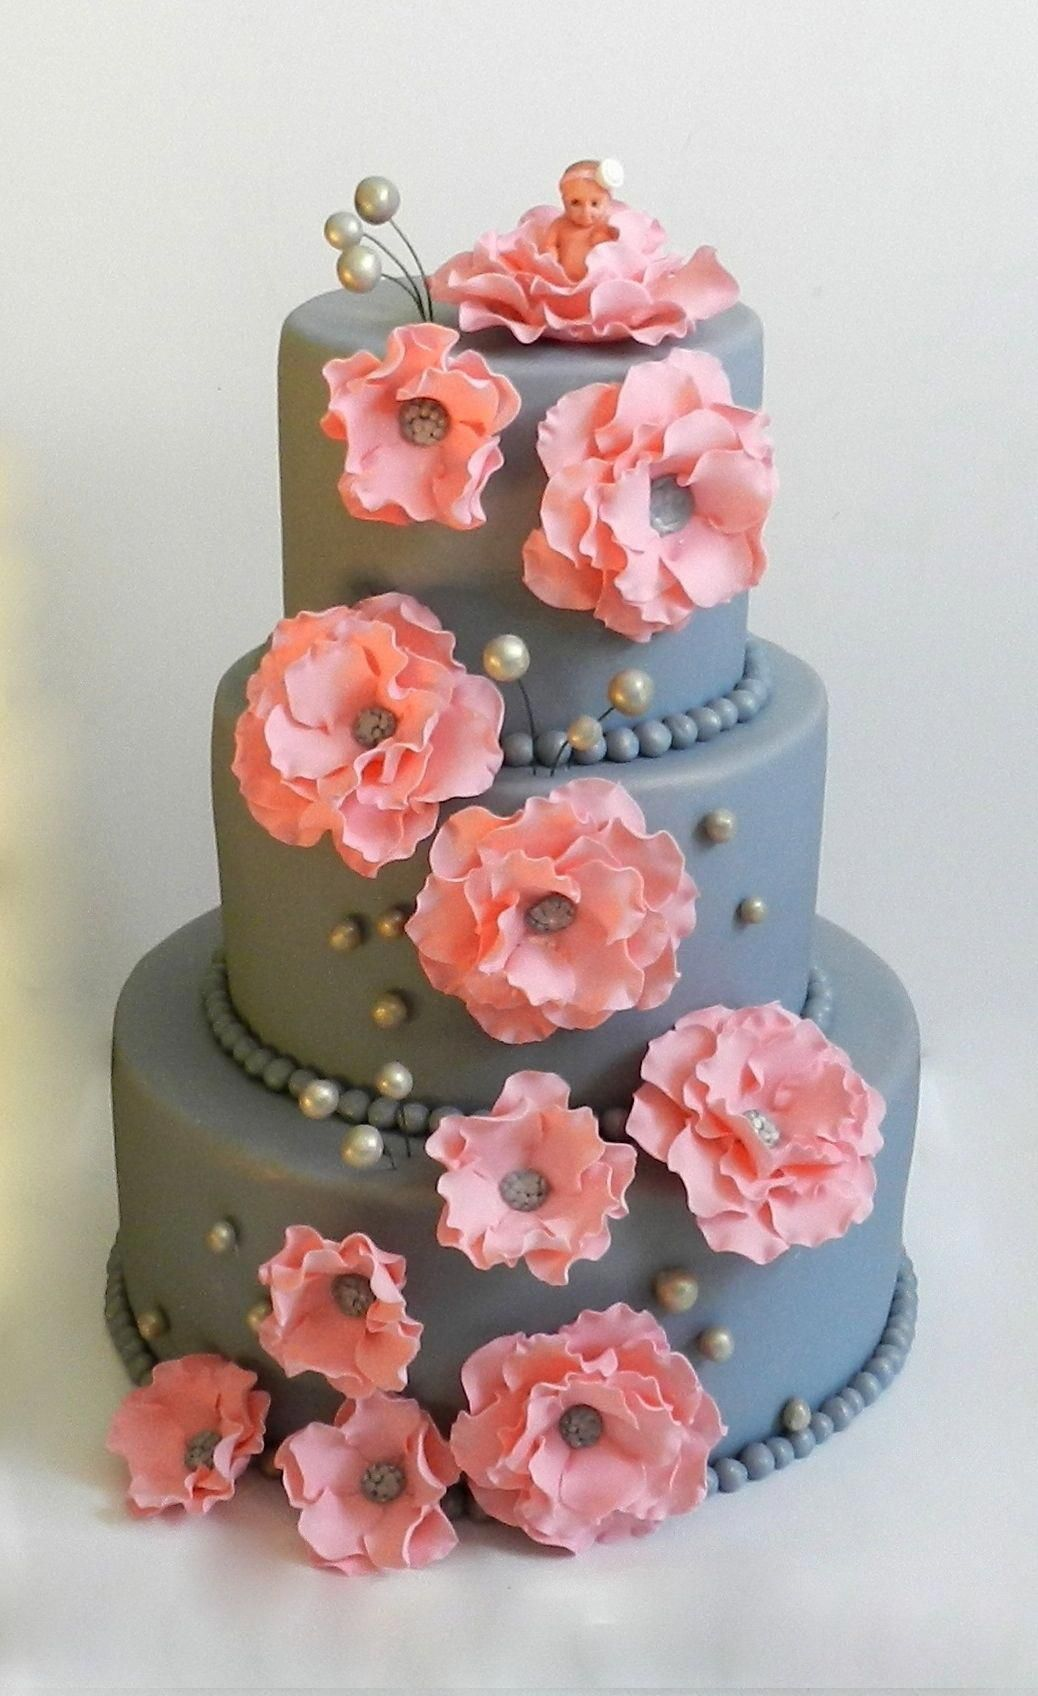 fancy cake in danielle's colors! hmmm. i've always wanted